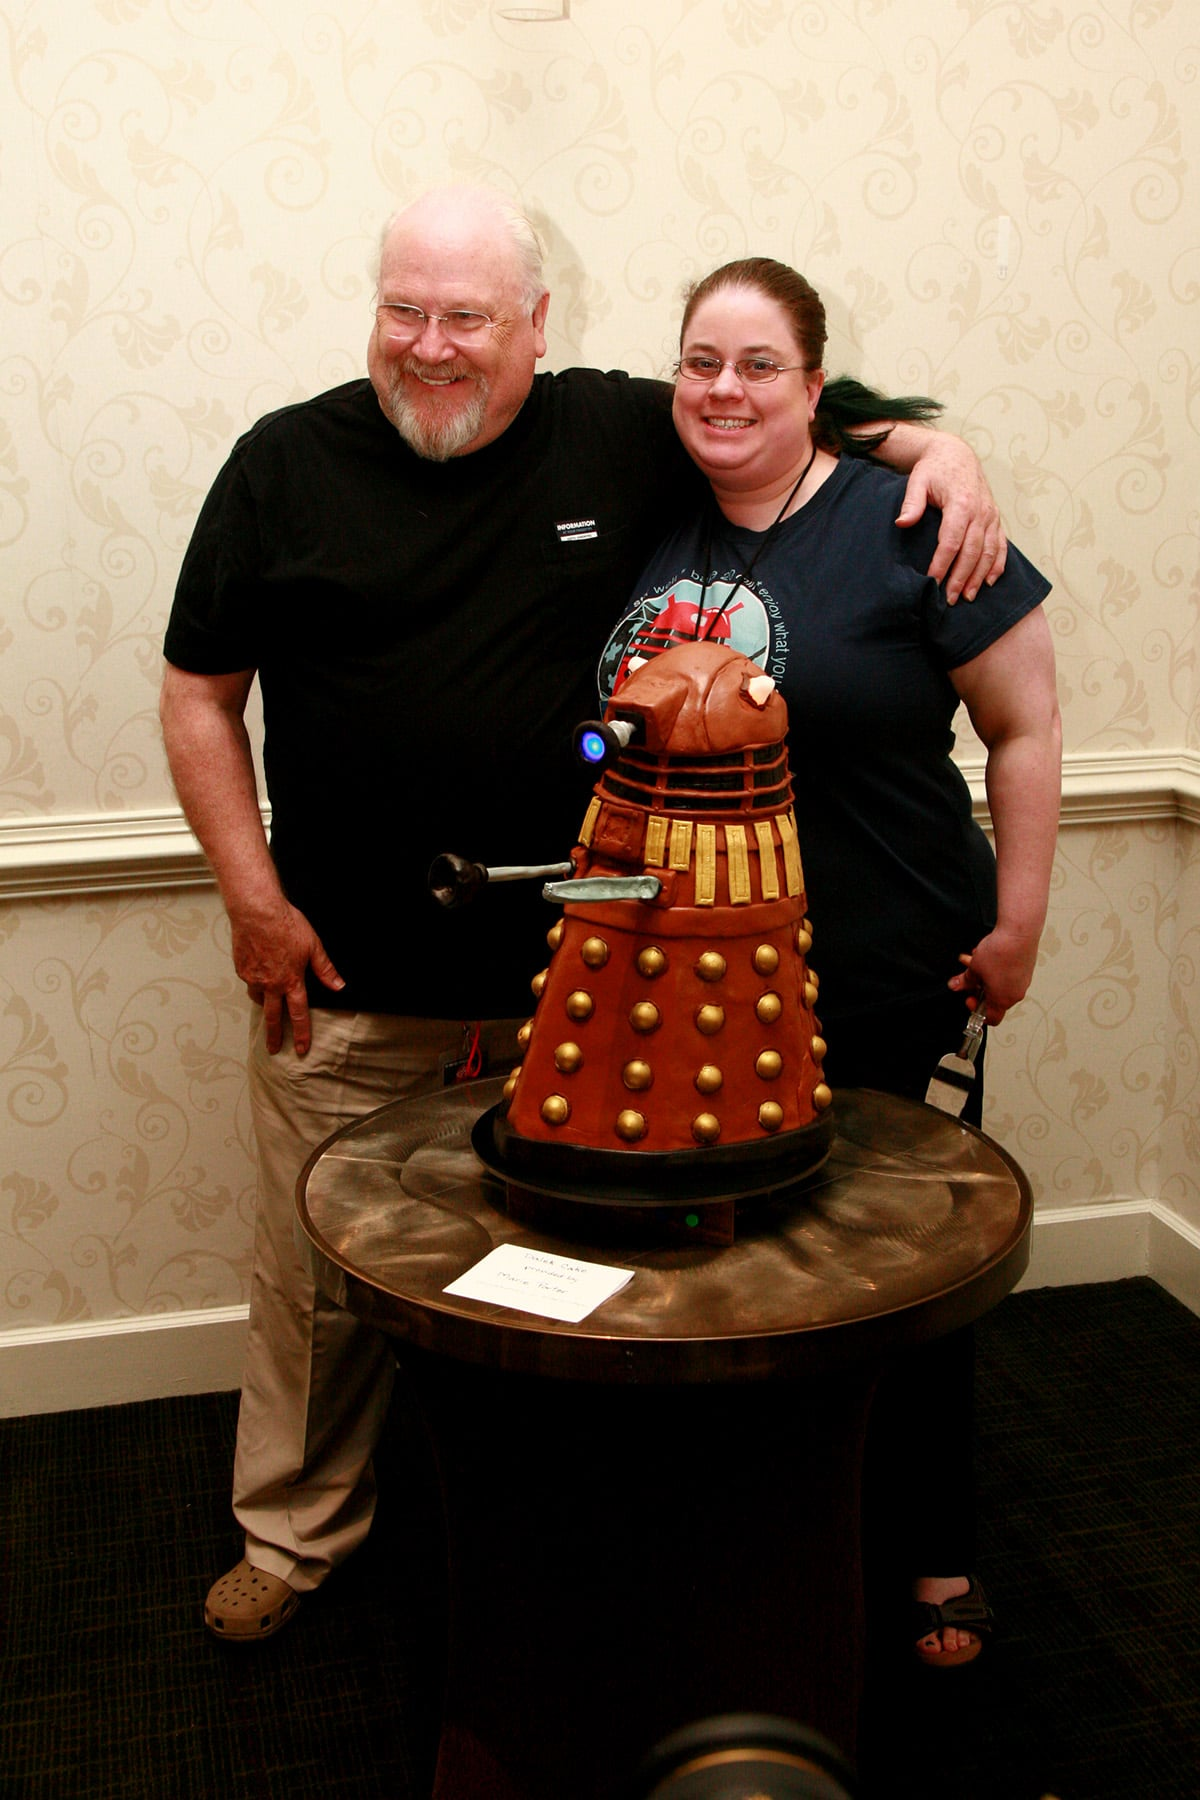 Colin Baker and Marie Porter pose behind the Dalek cake.